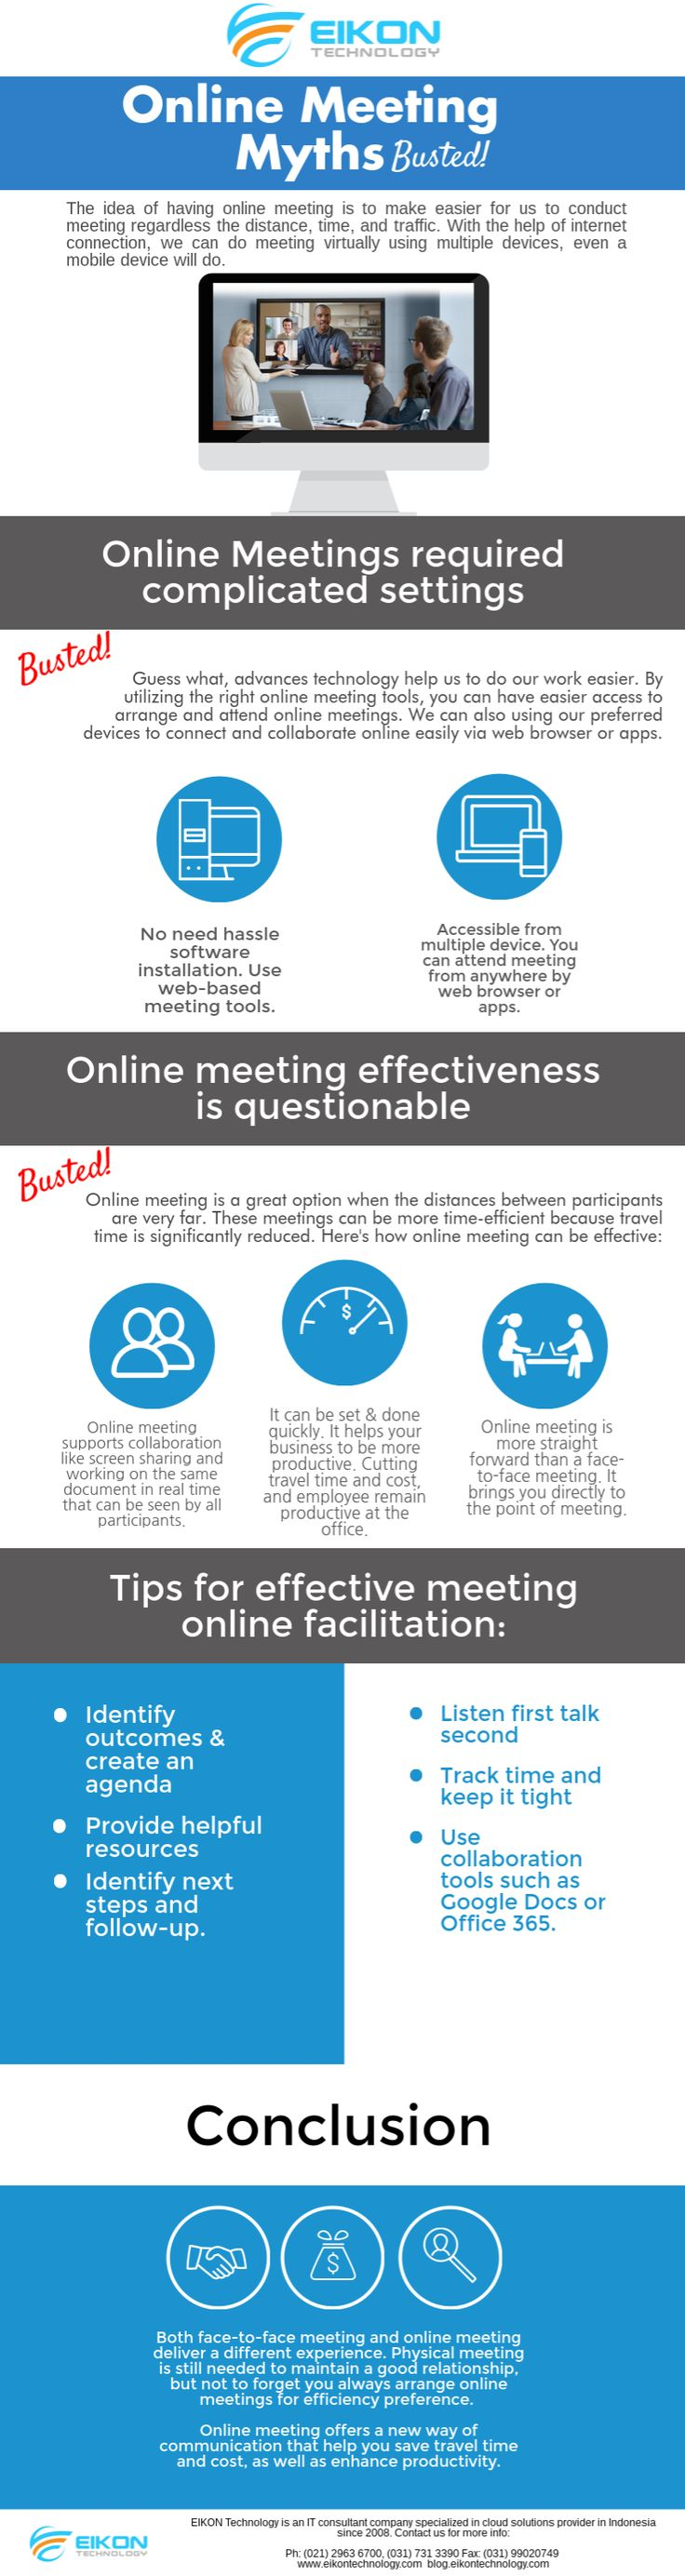 Face-to-face meeting is good, but you also need to know what you can benefit from an #onlinemeeting #eikontechnology